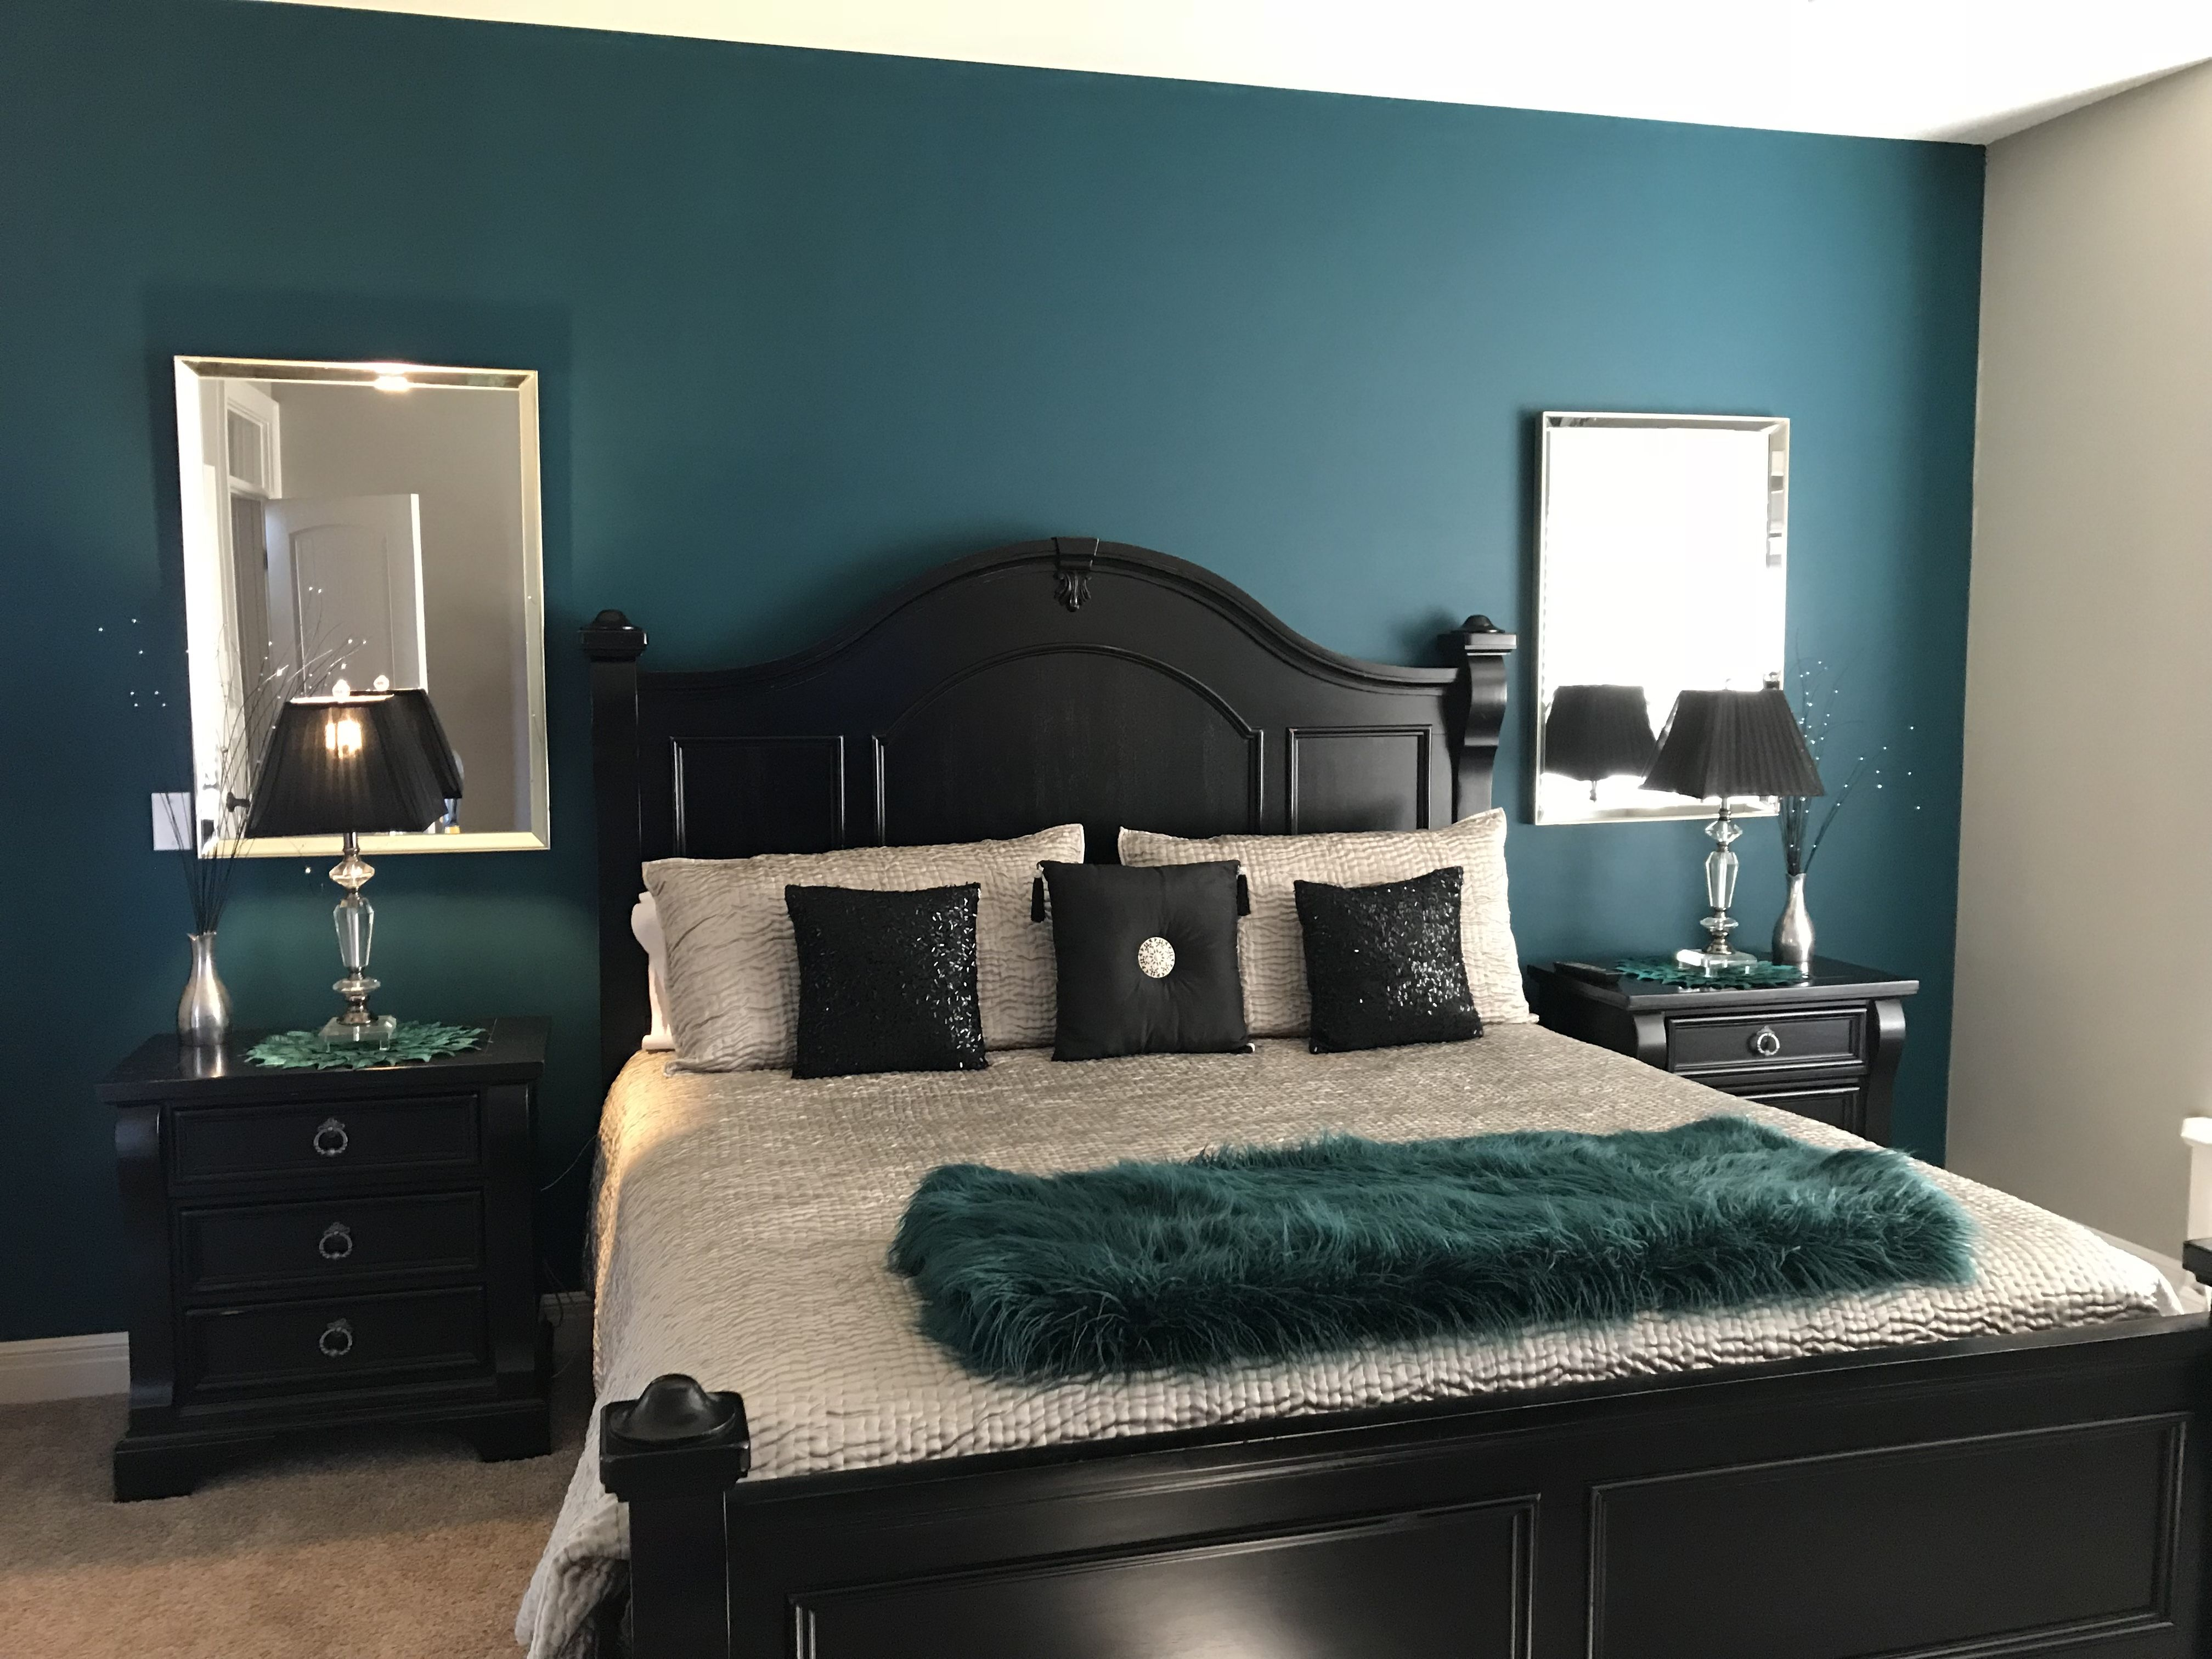 Dramatic Accent Wall In Master Bedroom Love The Teal Black And